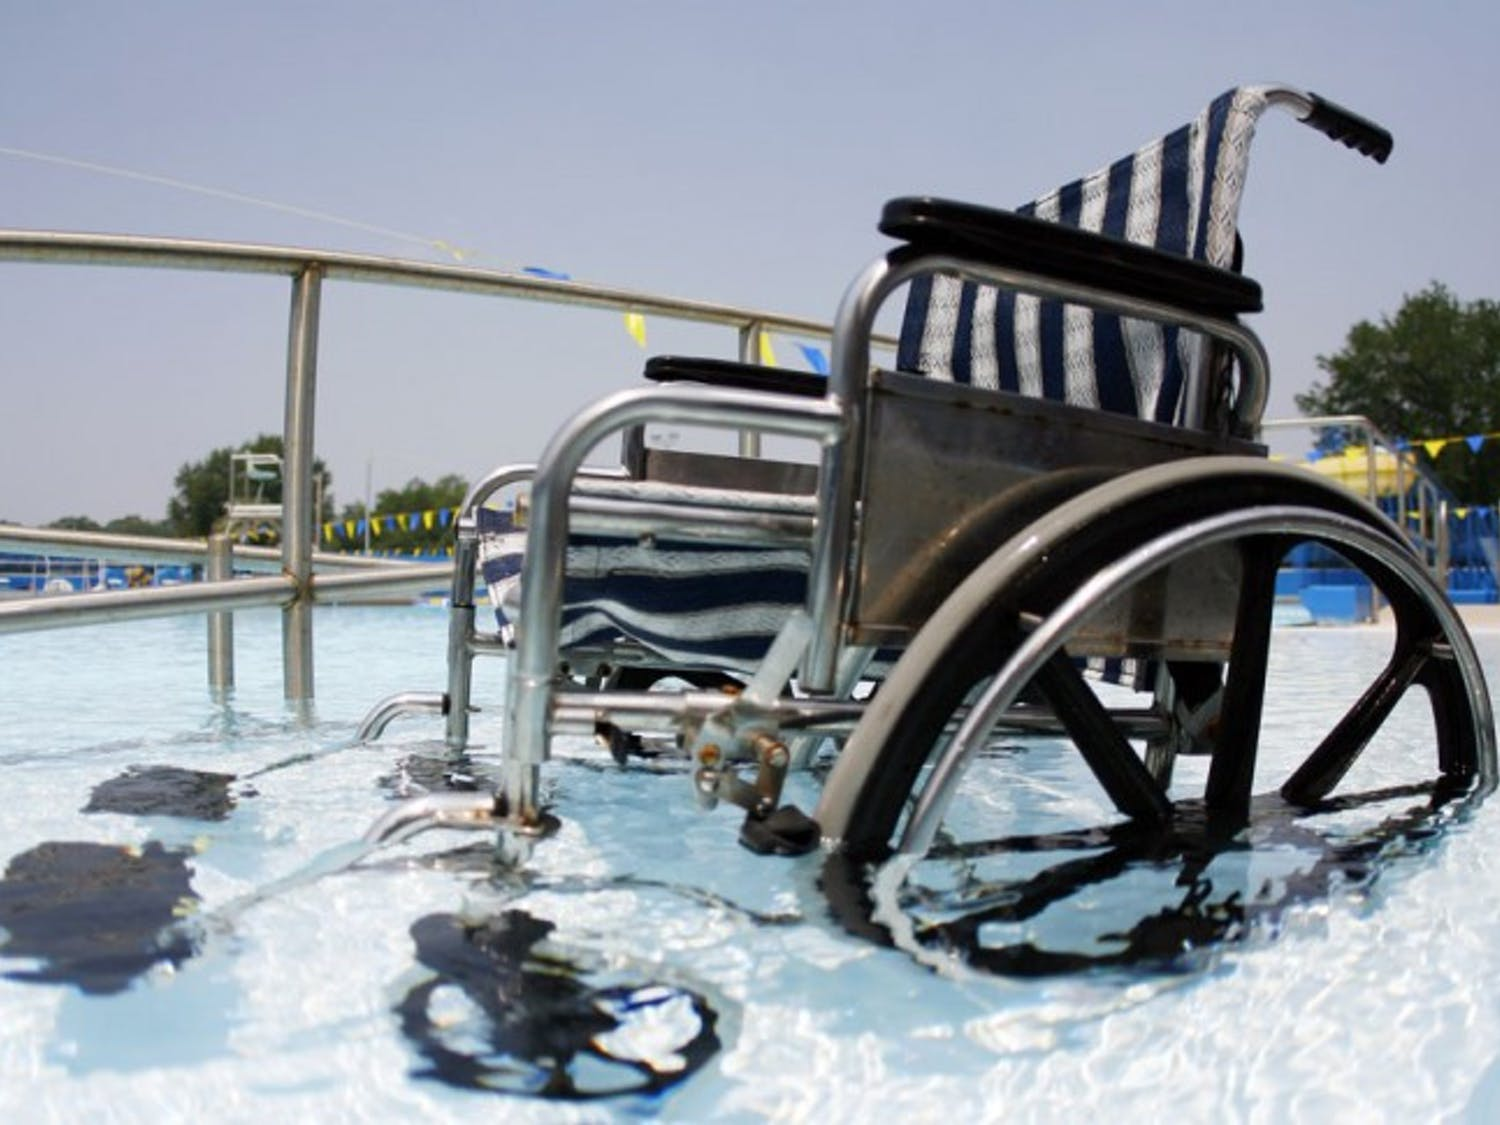 The beach entry wheelchair ramp at Dwight H. Hunter Municipal Pool, also know as the Northeast Pool, is one of two soon-to-be required methods of entry for people with disabilities as part of the Americans with Disabilities Act.